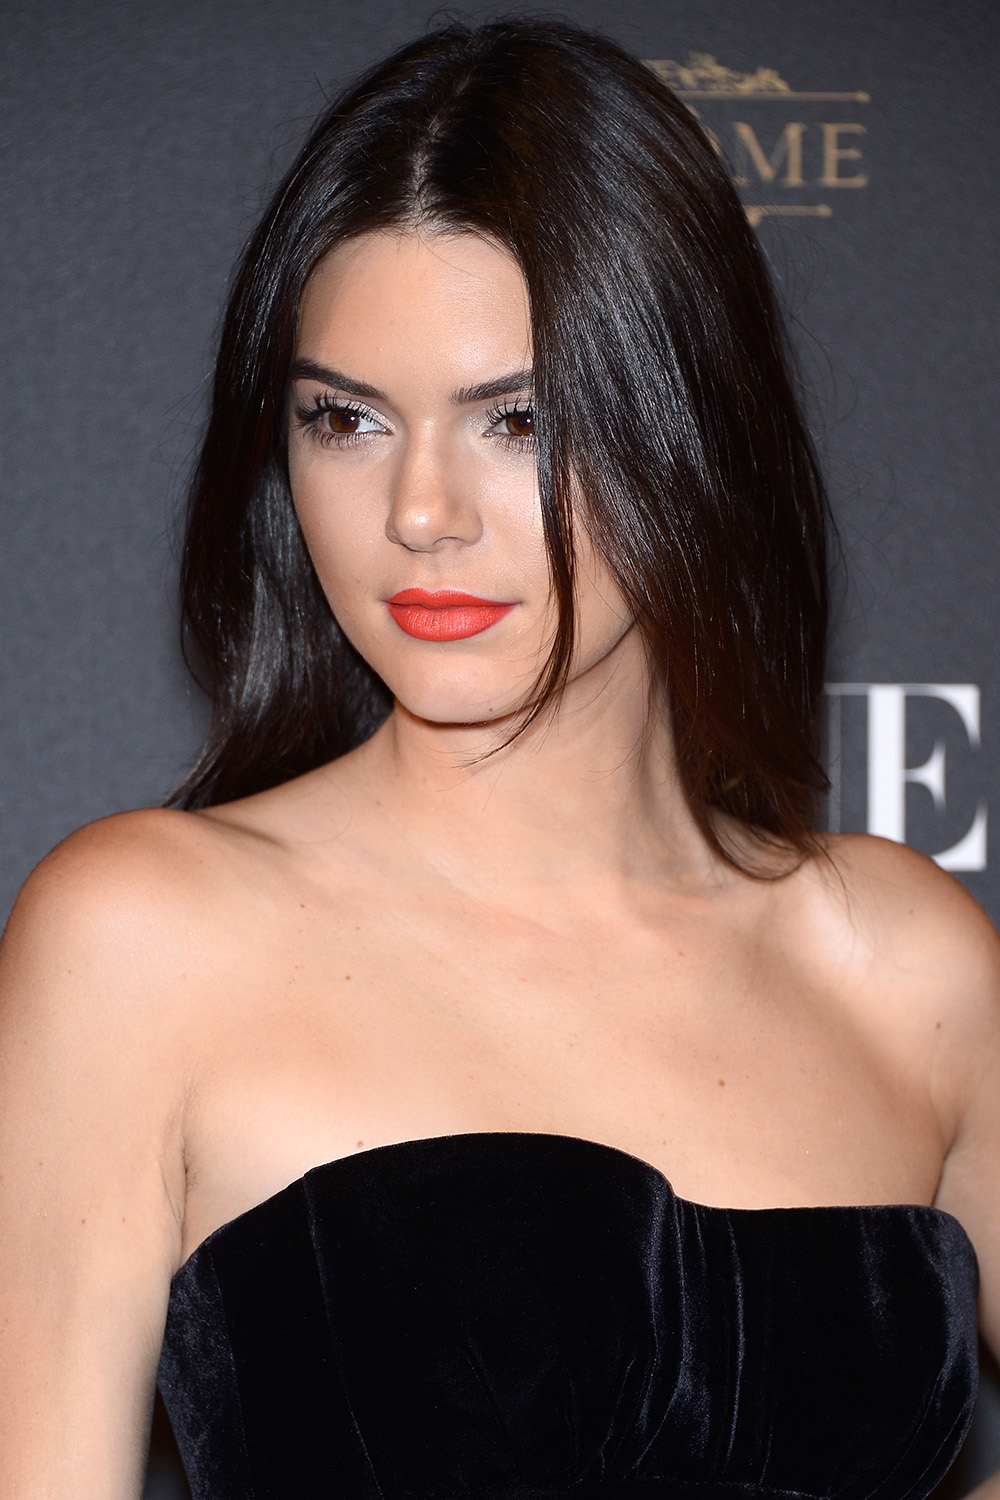 Kendall Jenner brunette hair colors at Paris Fashion Week Spring/Summer 2016